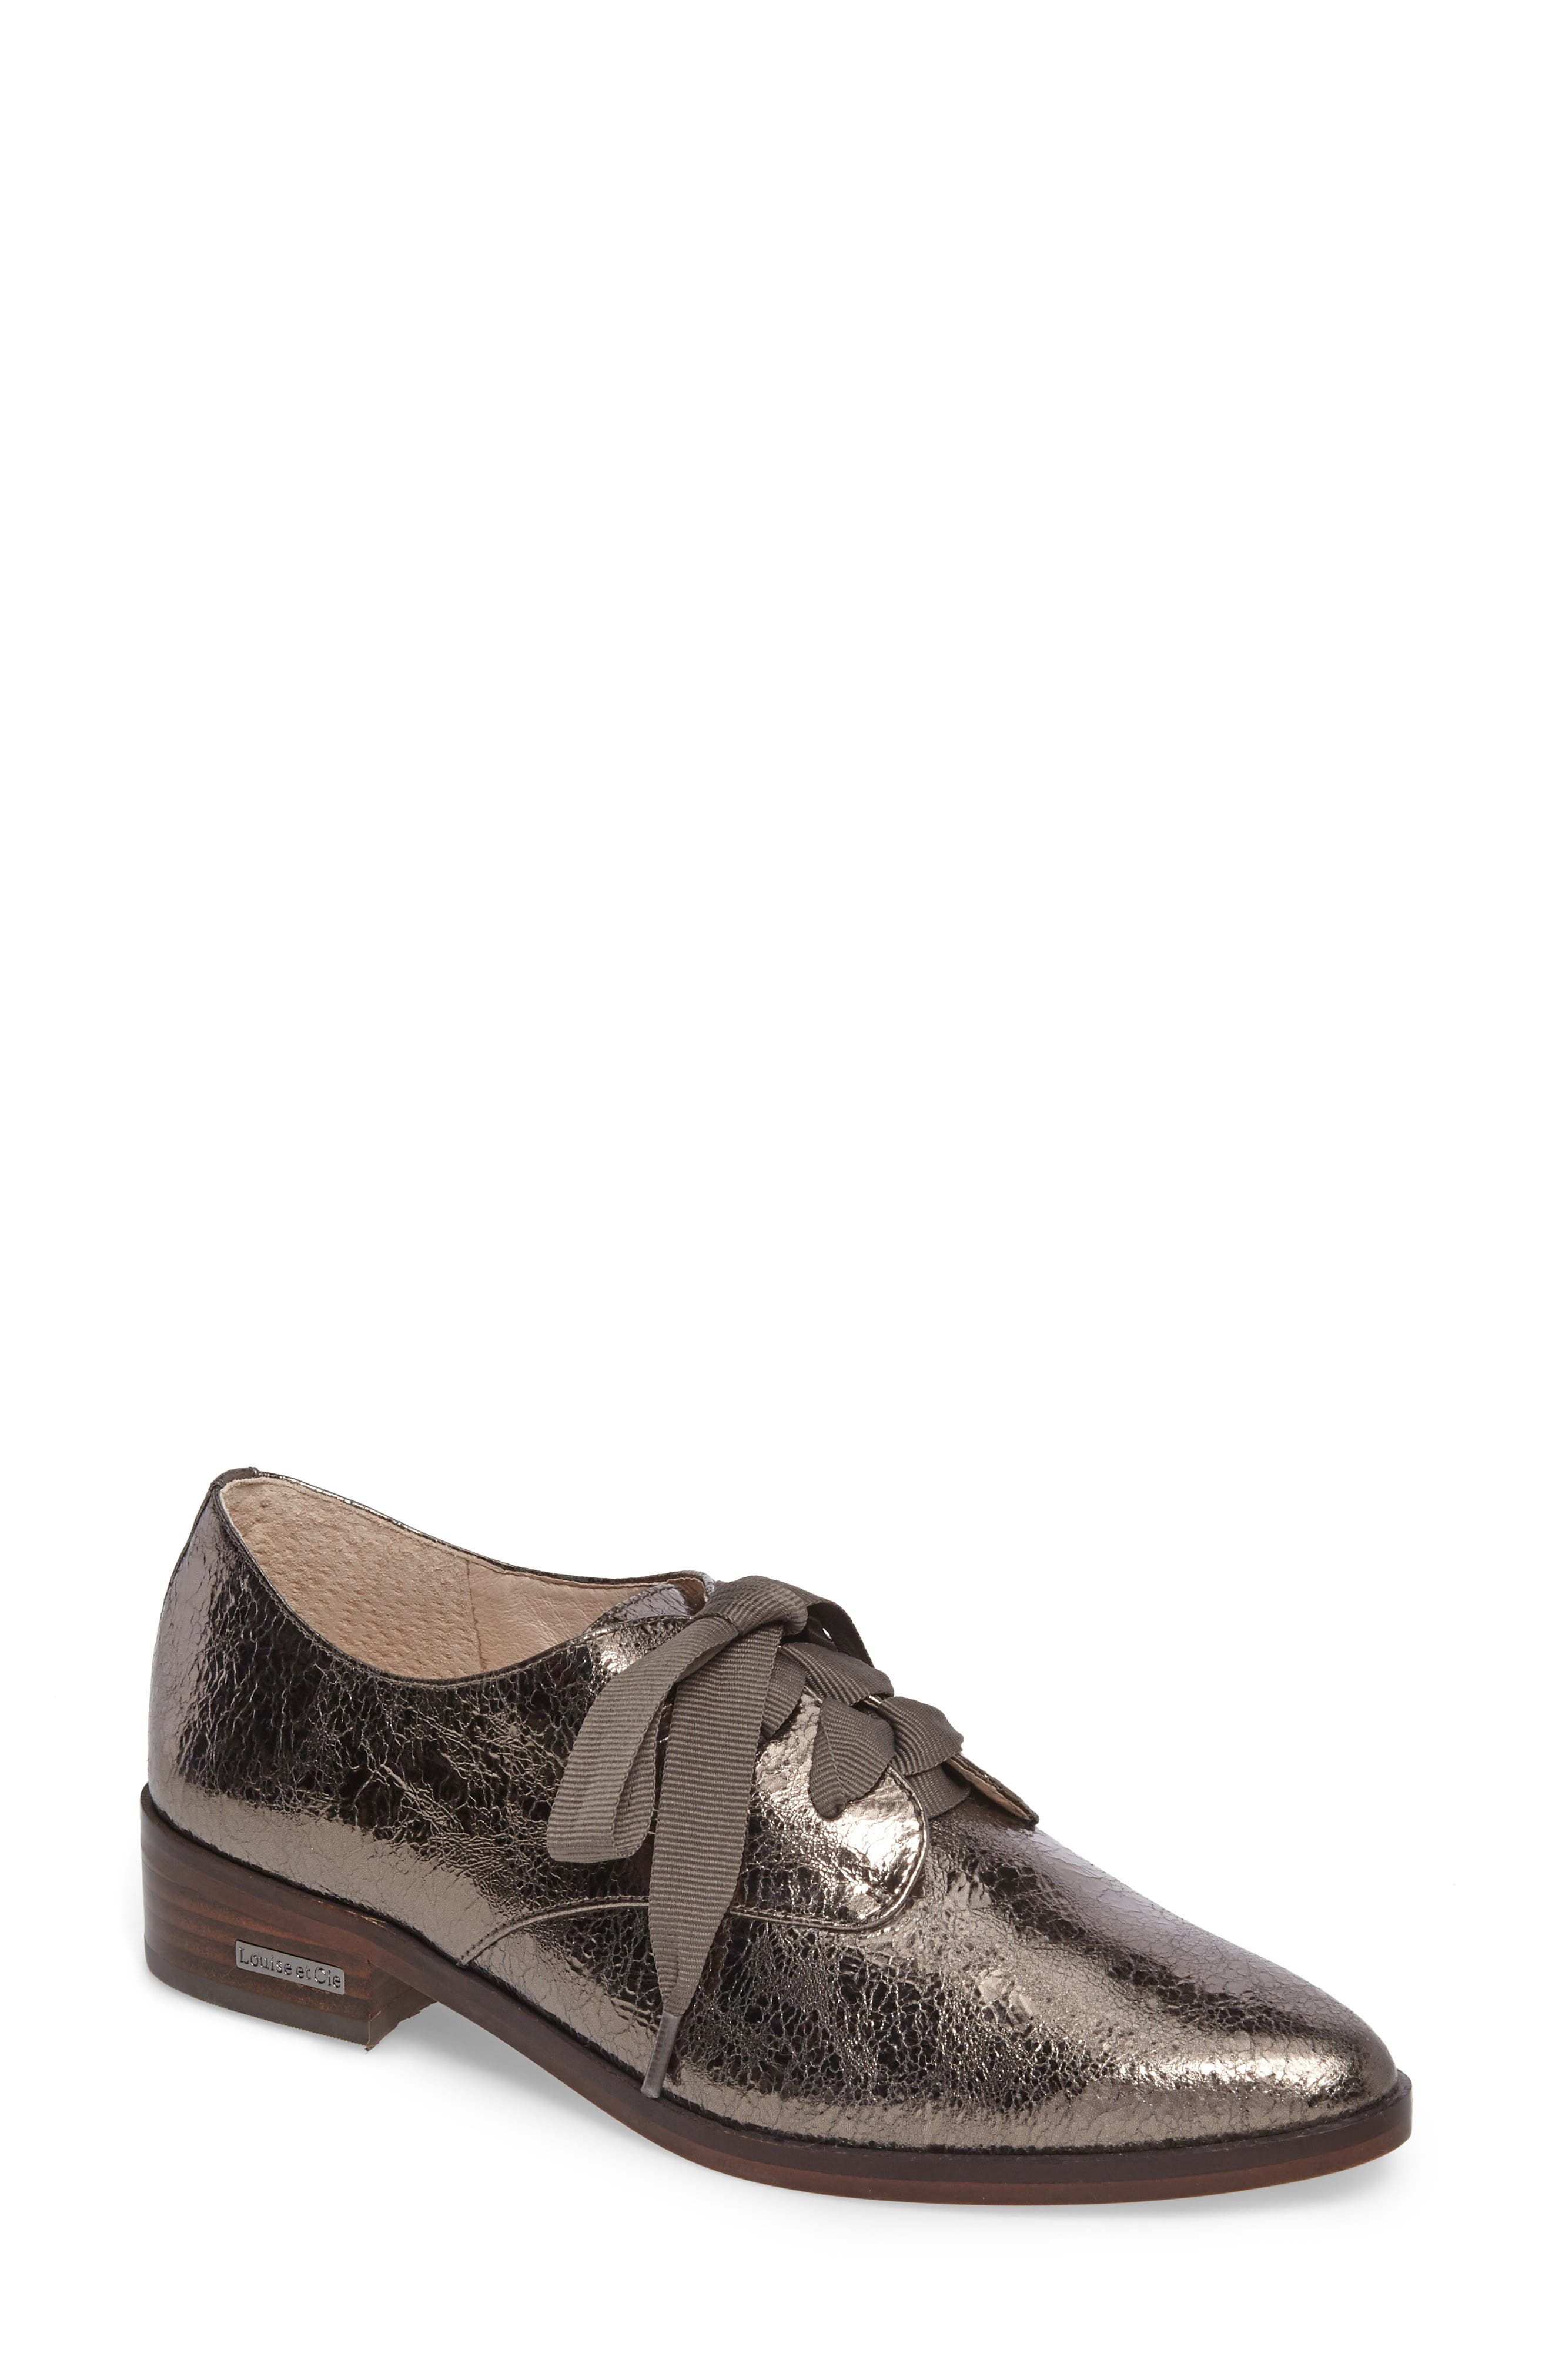 Louise et Cie 'Adwin' Almond Toe Oxford (Women) (Nordstrom Exclusive)